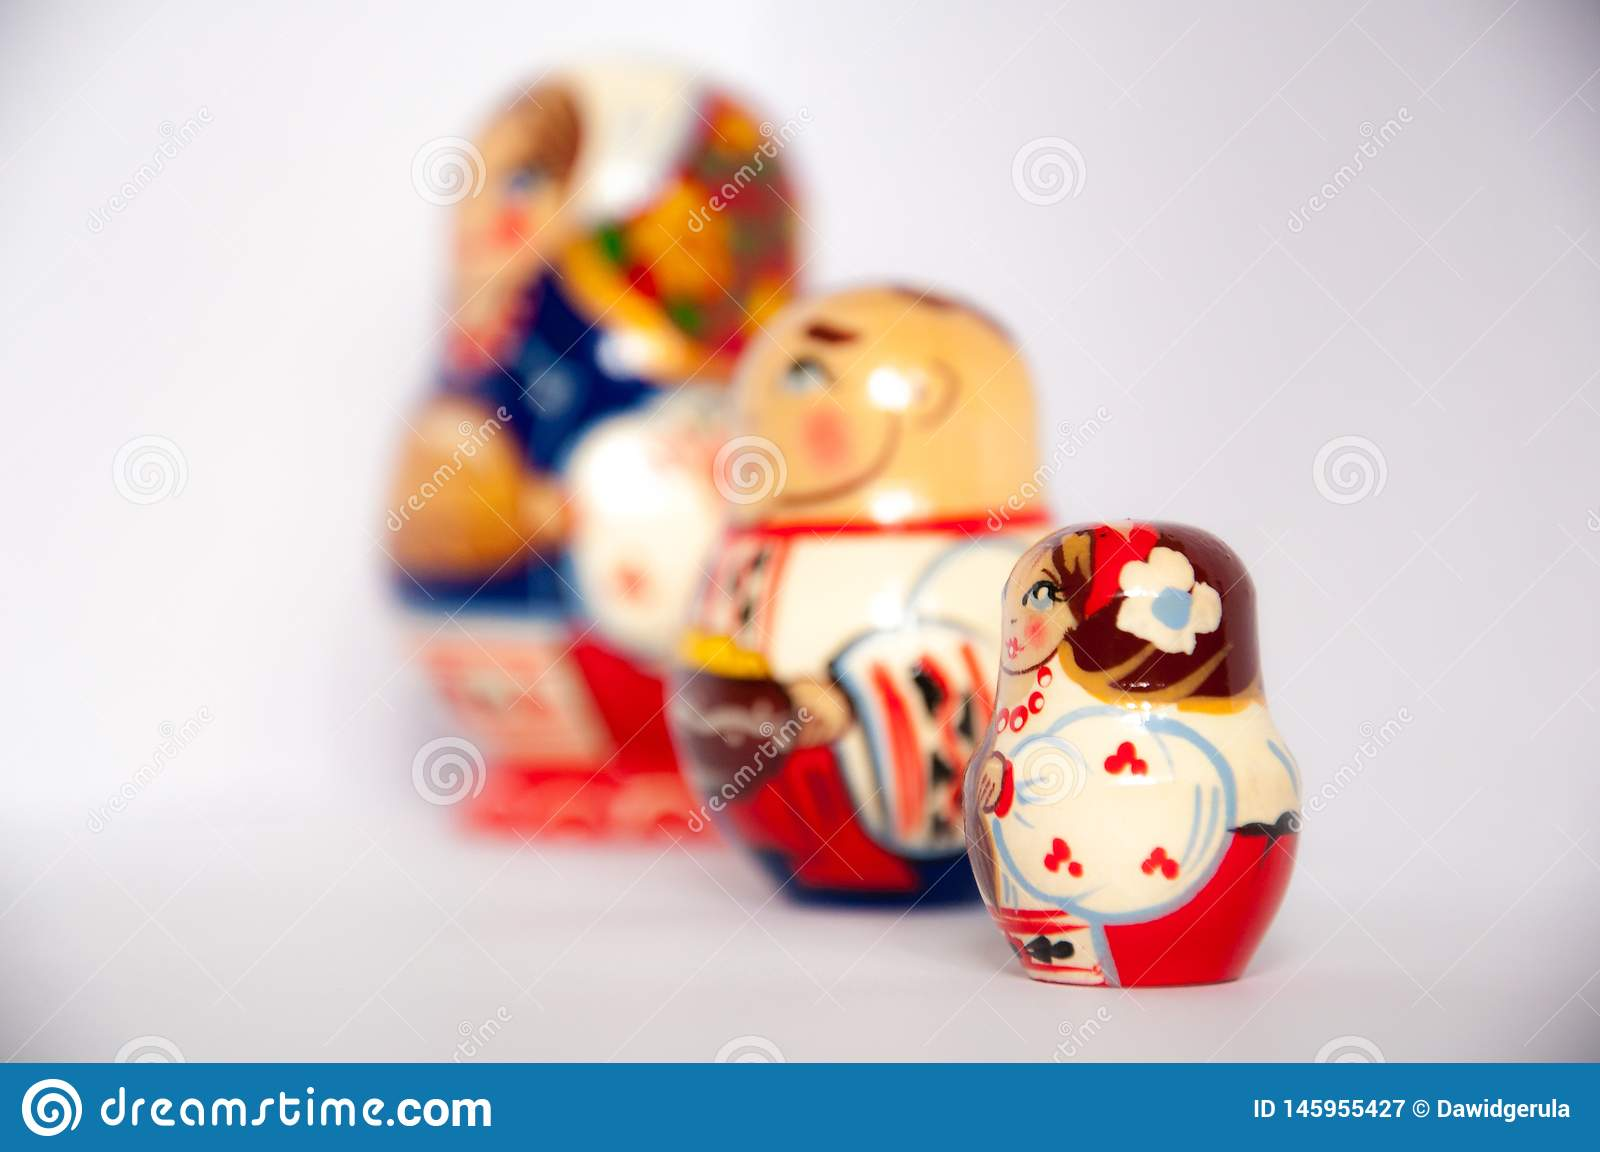 Colored russian matrioshka dolls on grey isolated background